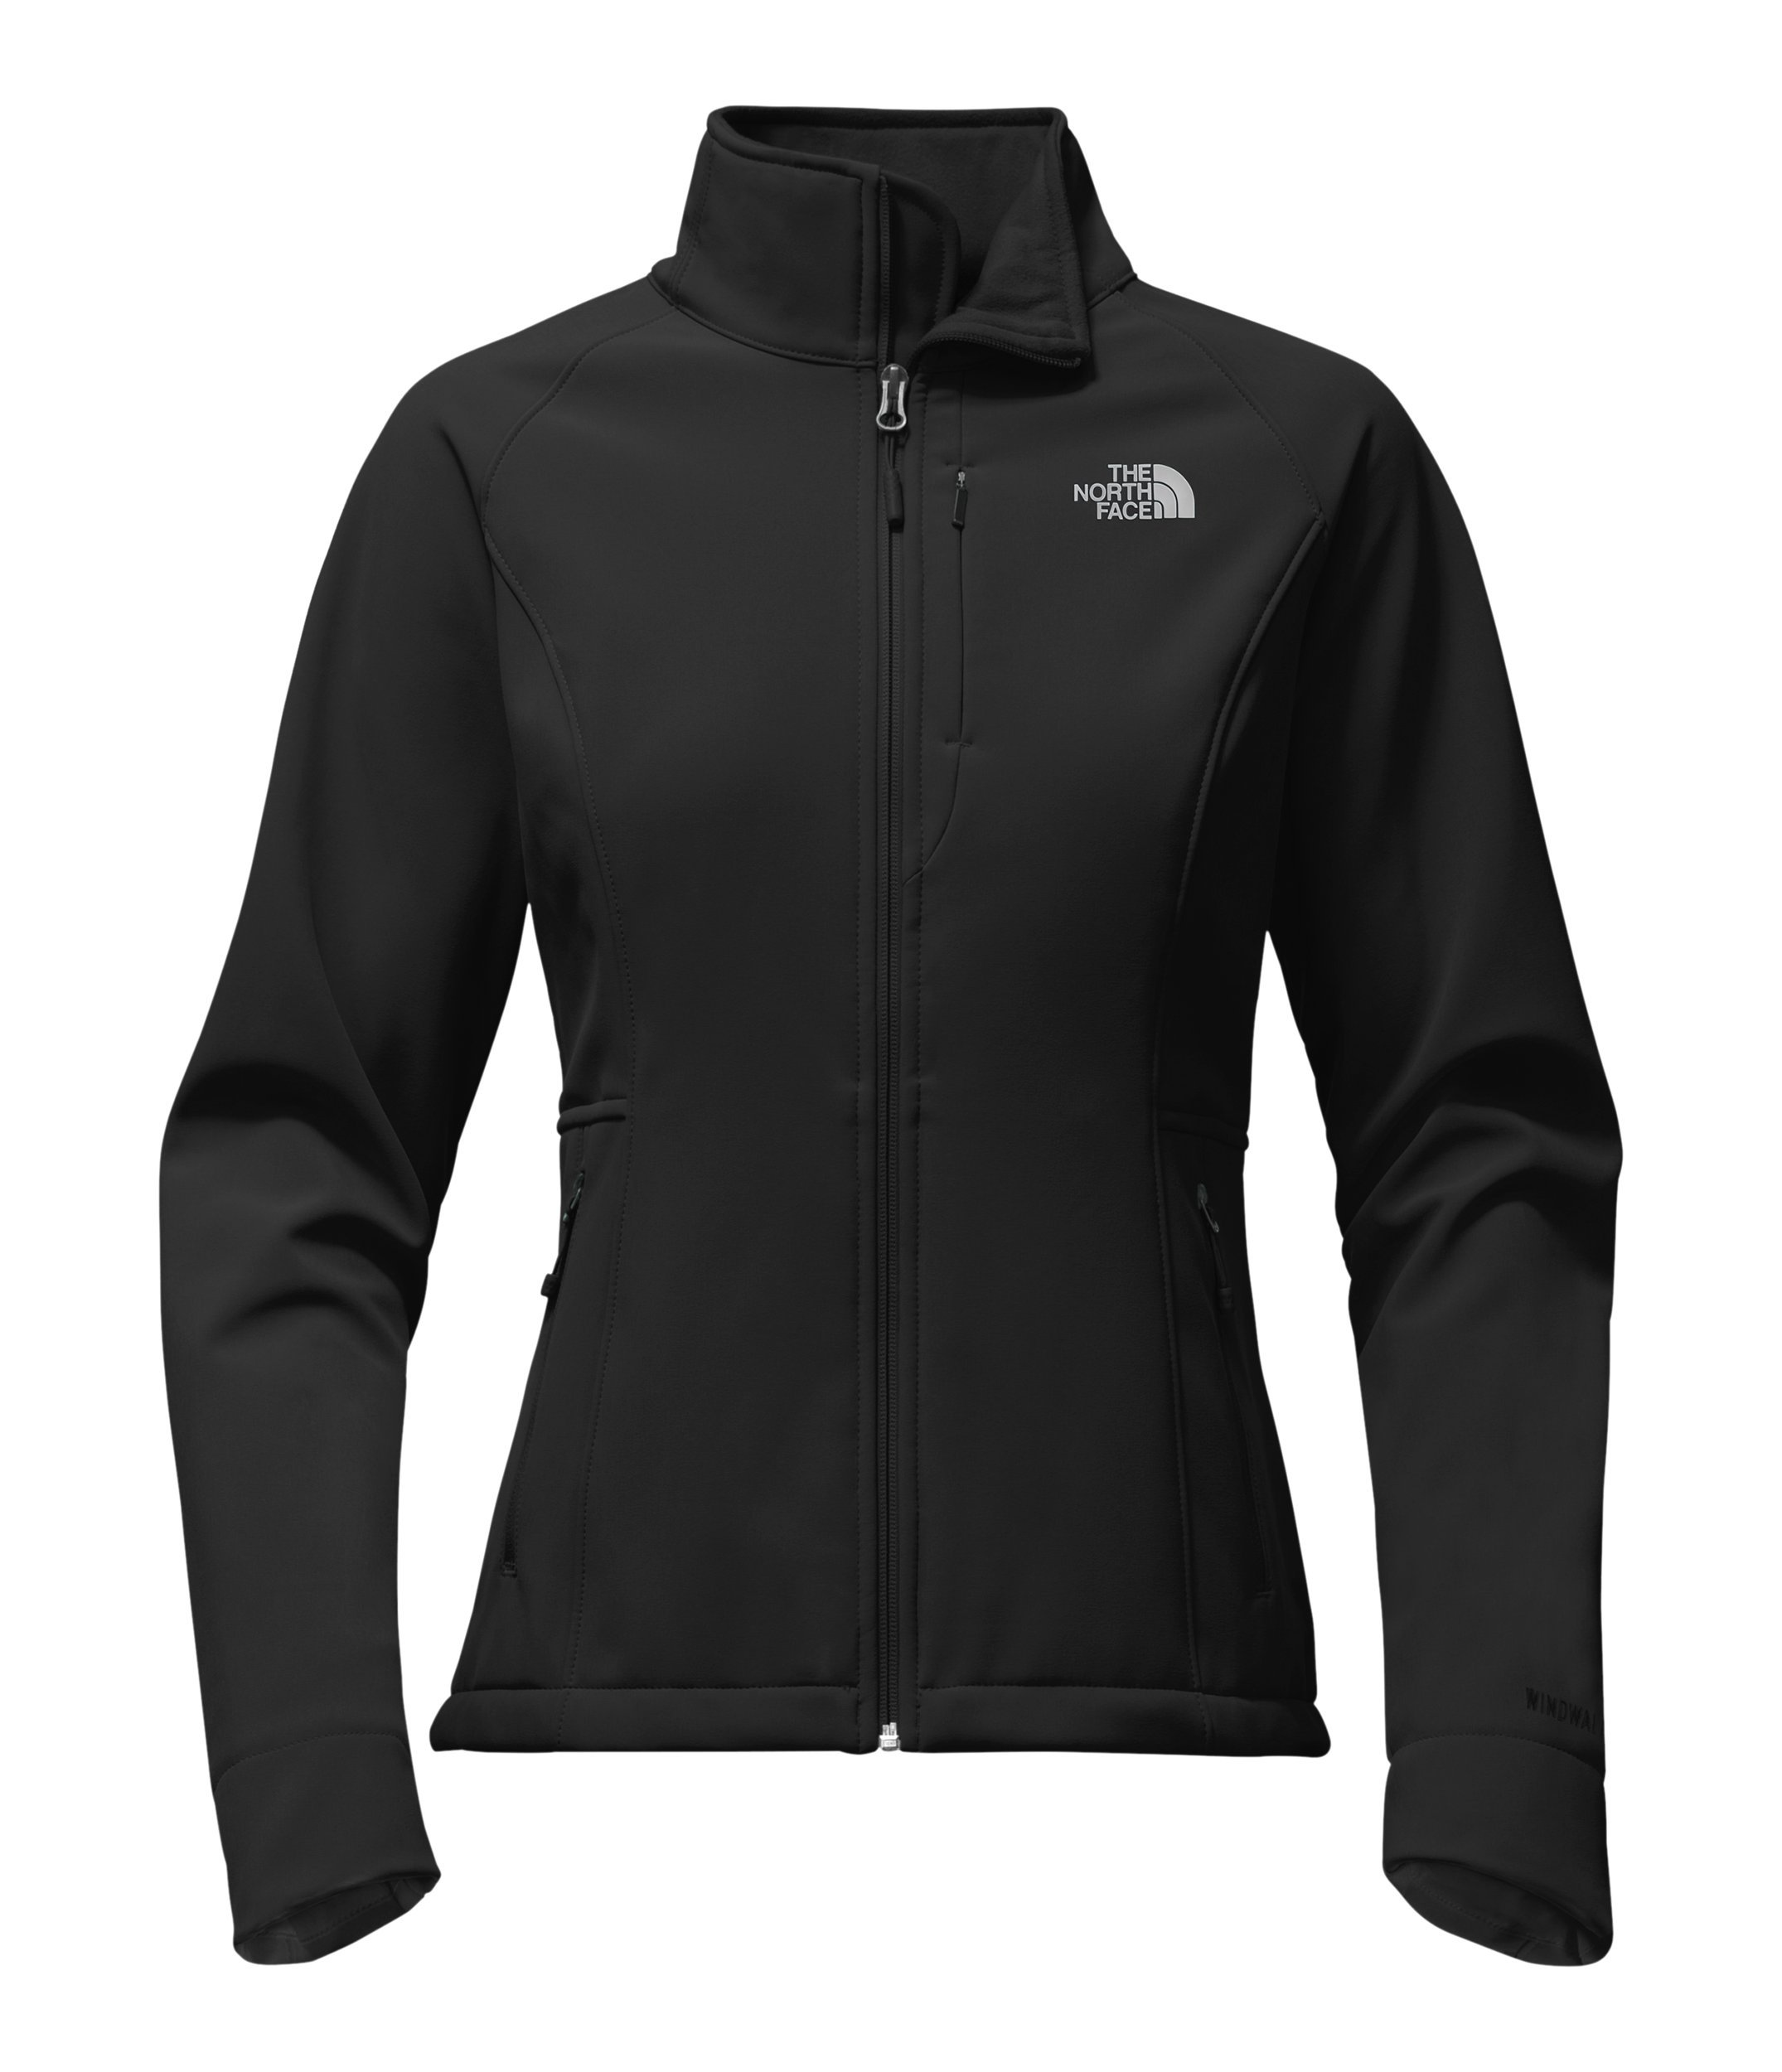 The North Face Women'S Apex Bionic 2 Jacket Tnf Black (Large) by The North Face